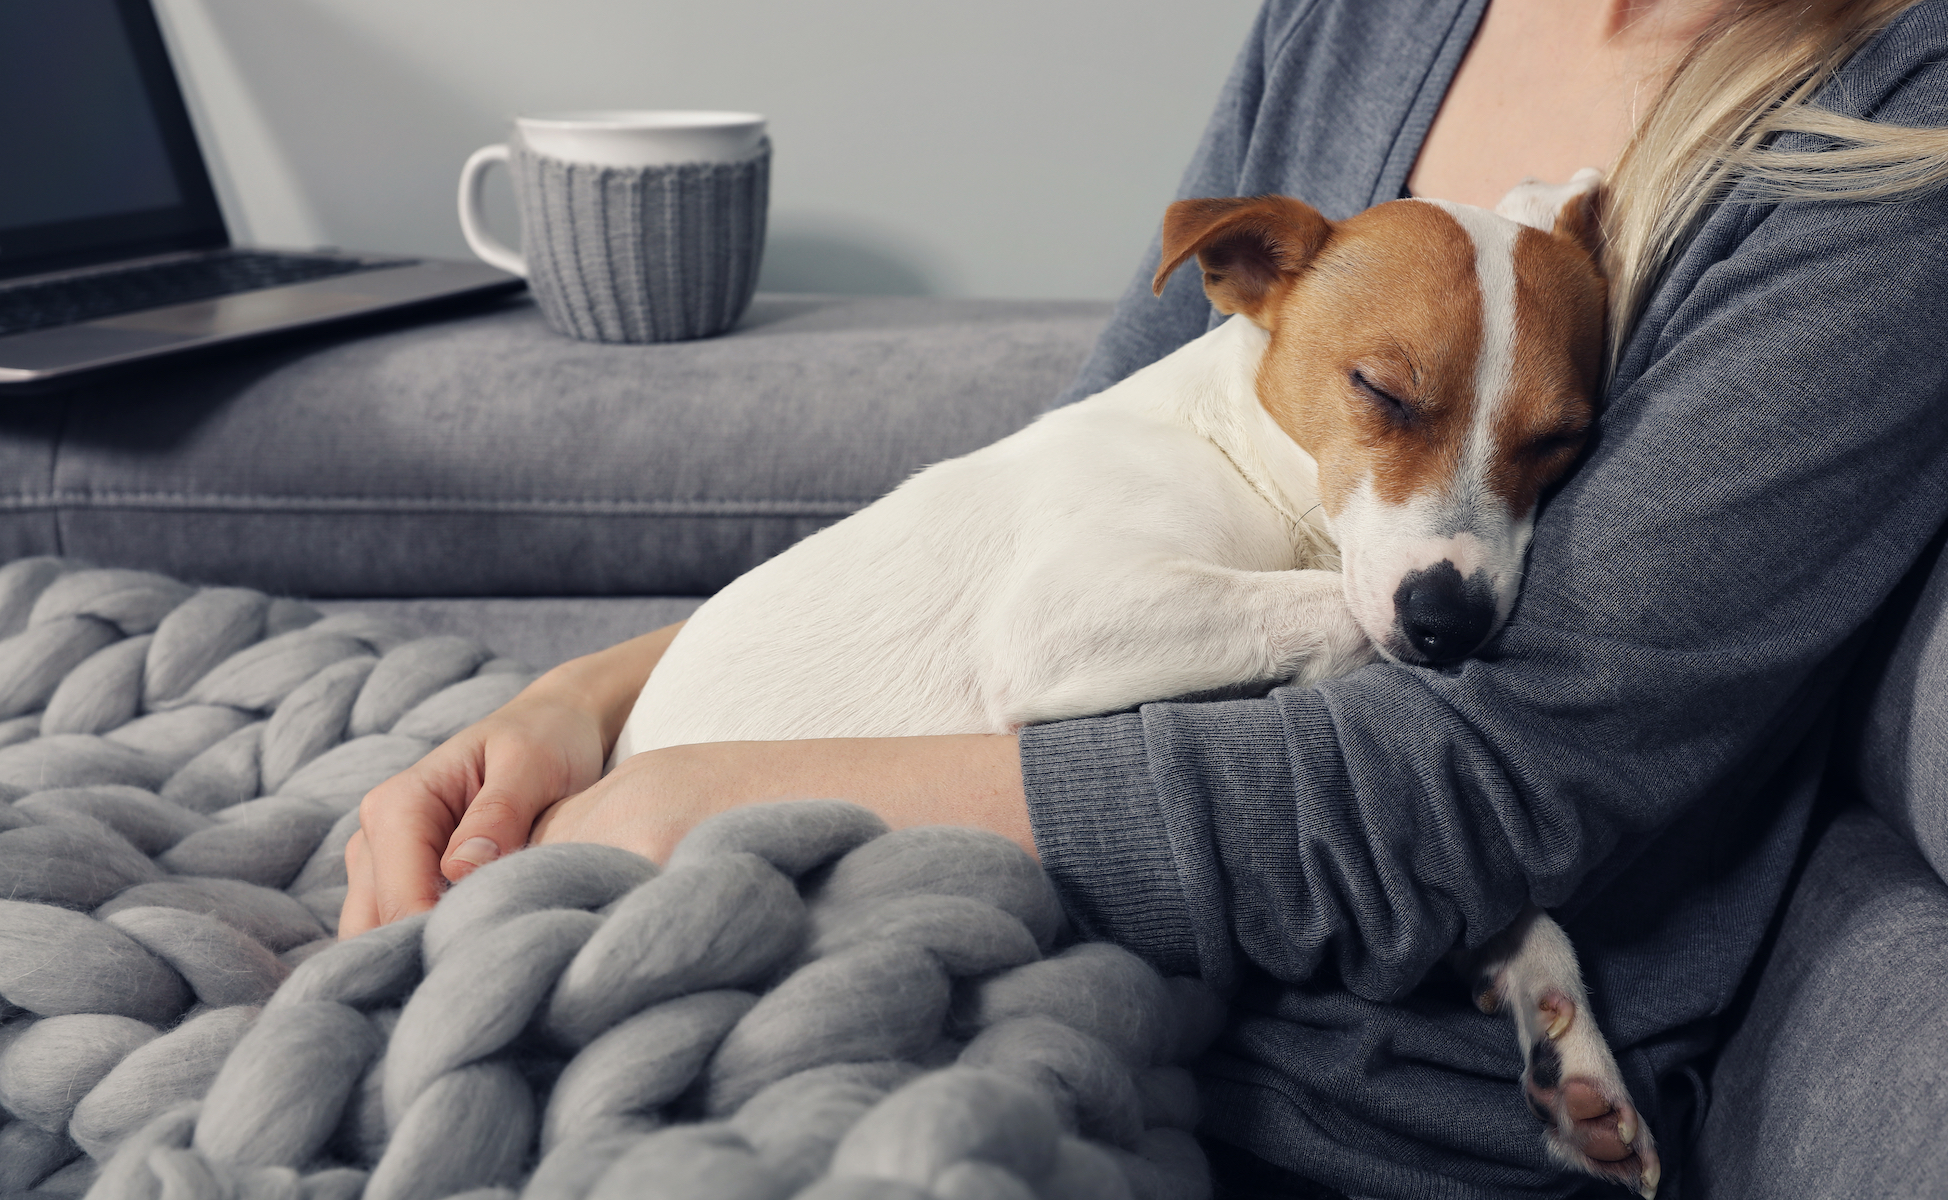 Canva - Cozy home, woman covered with warm blanket watching movie, hugging sleeping dog. Relax, carefree, comfort lifestyle.